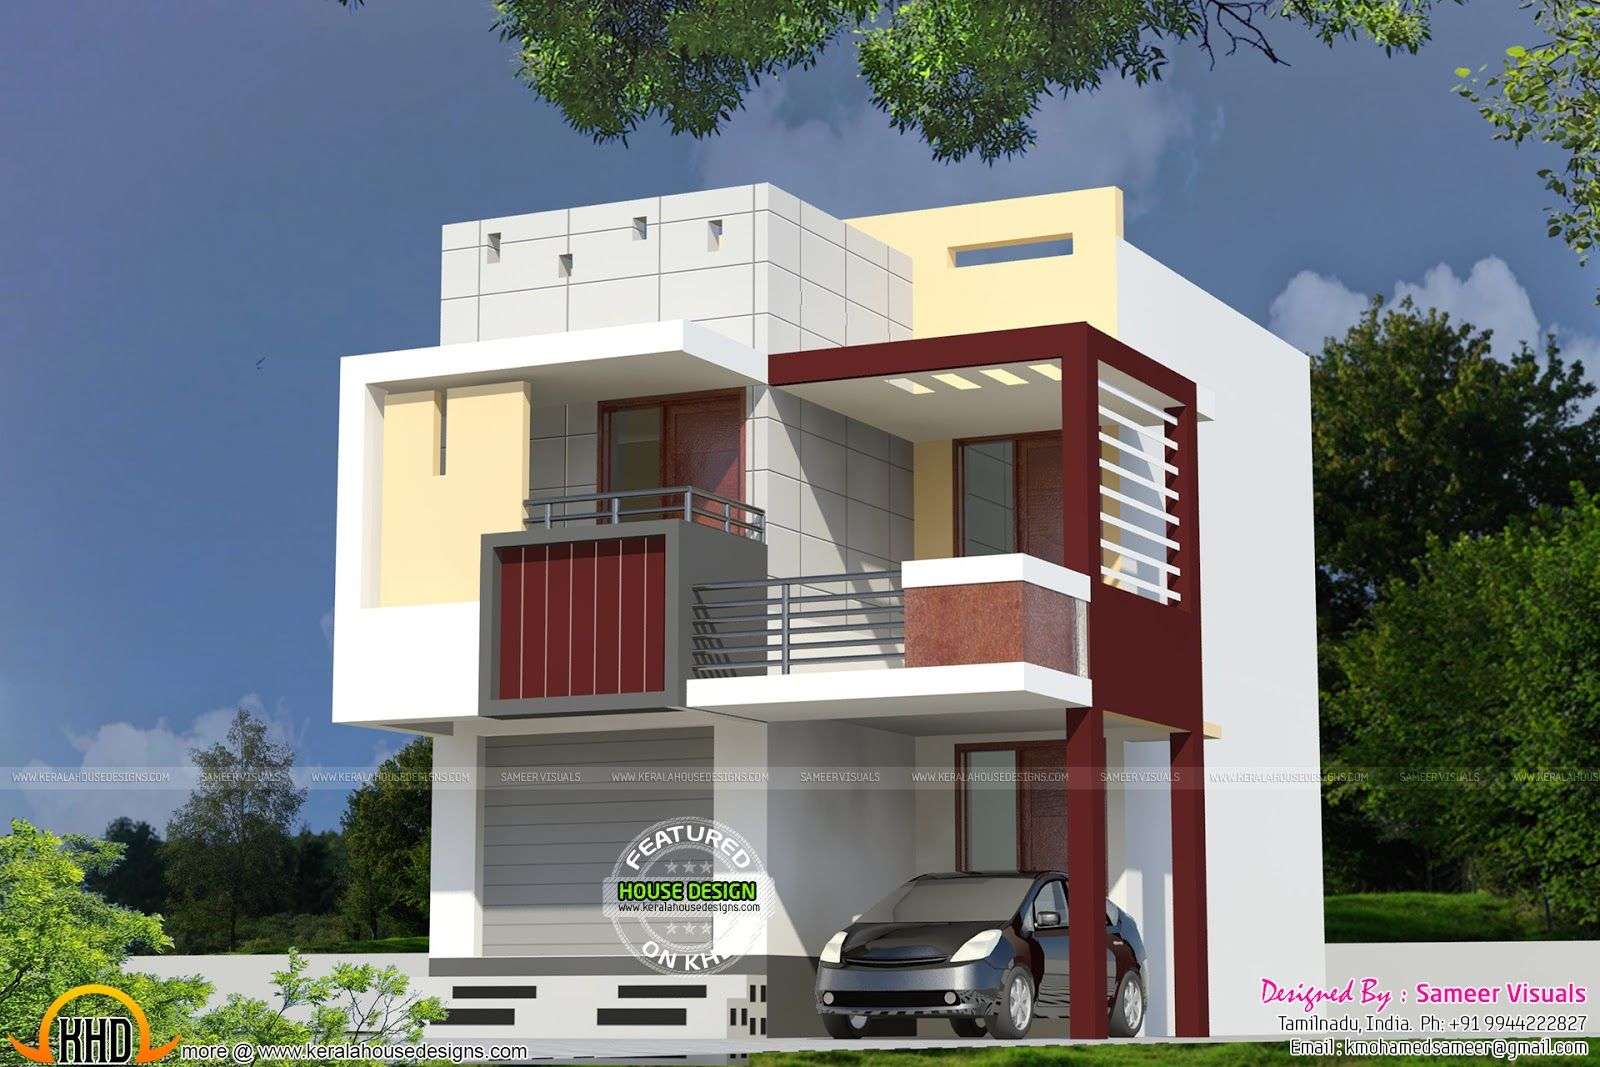 1340 square feet 3 bedroom small double storied house with shop by sameer visuals tamilnadu india